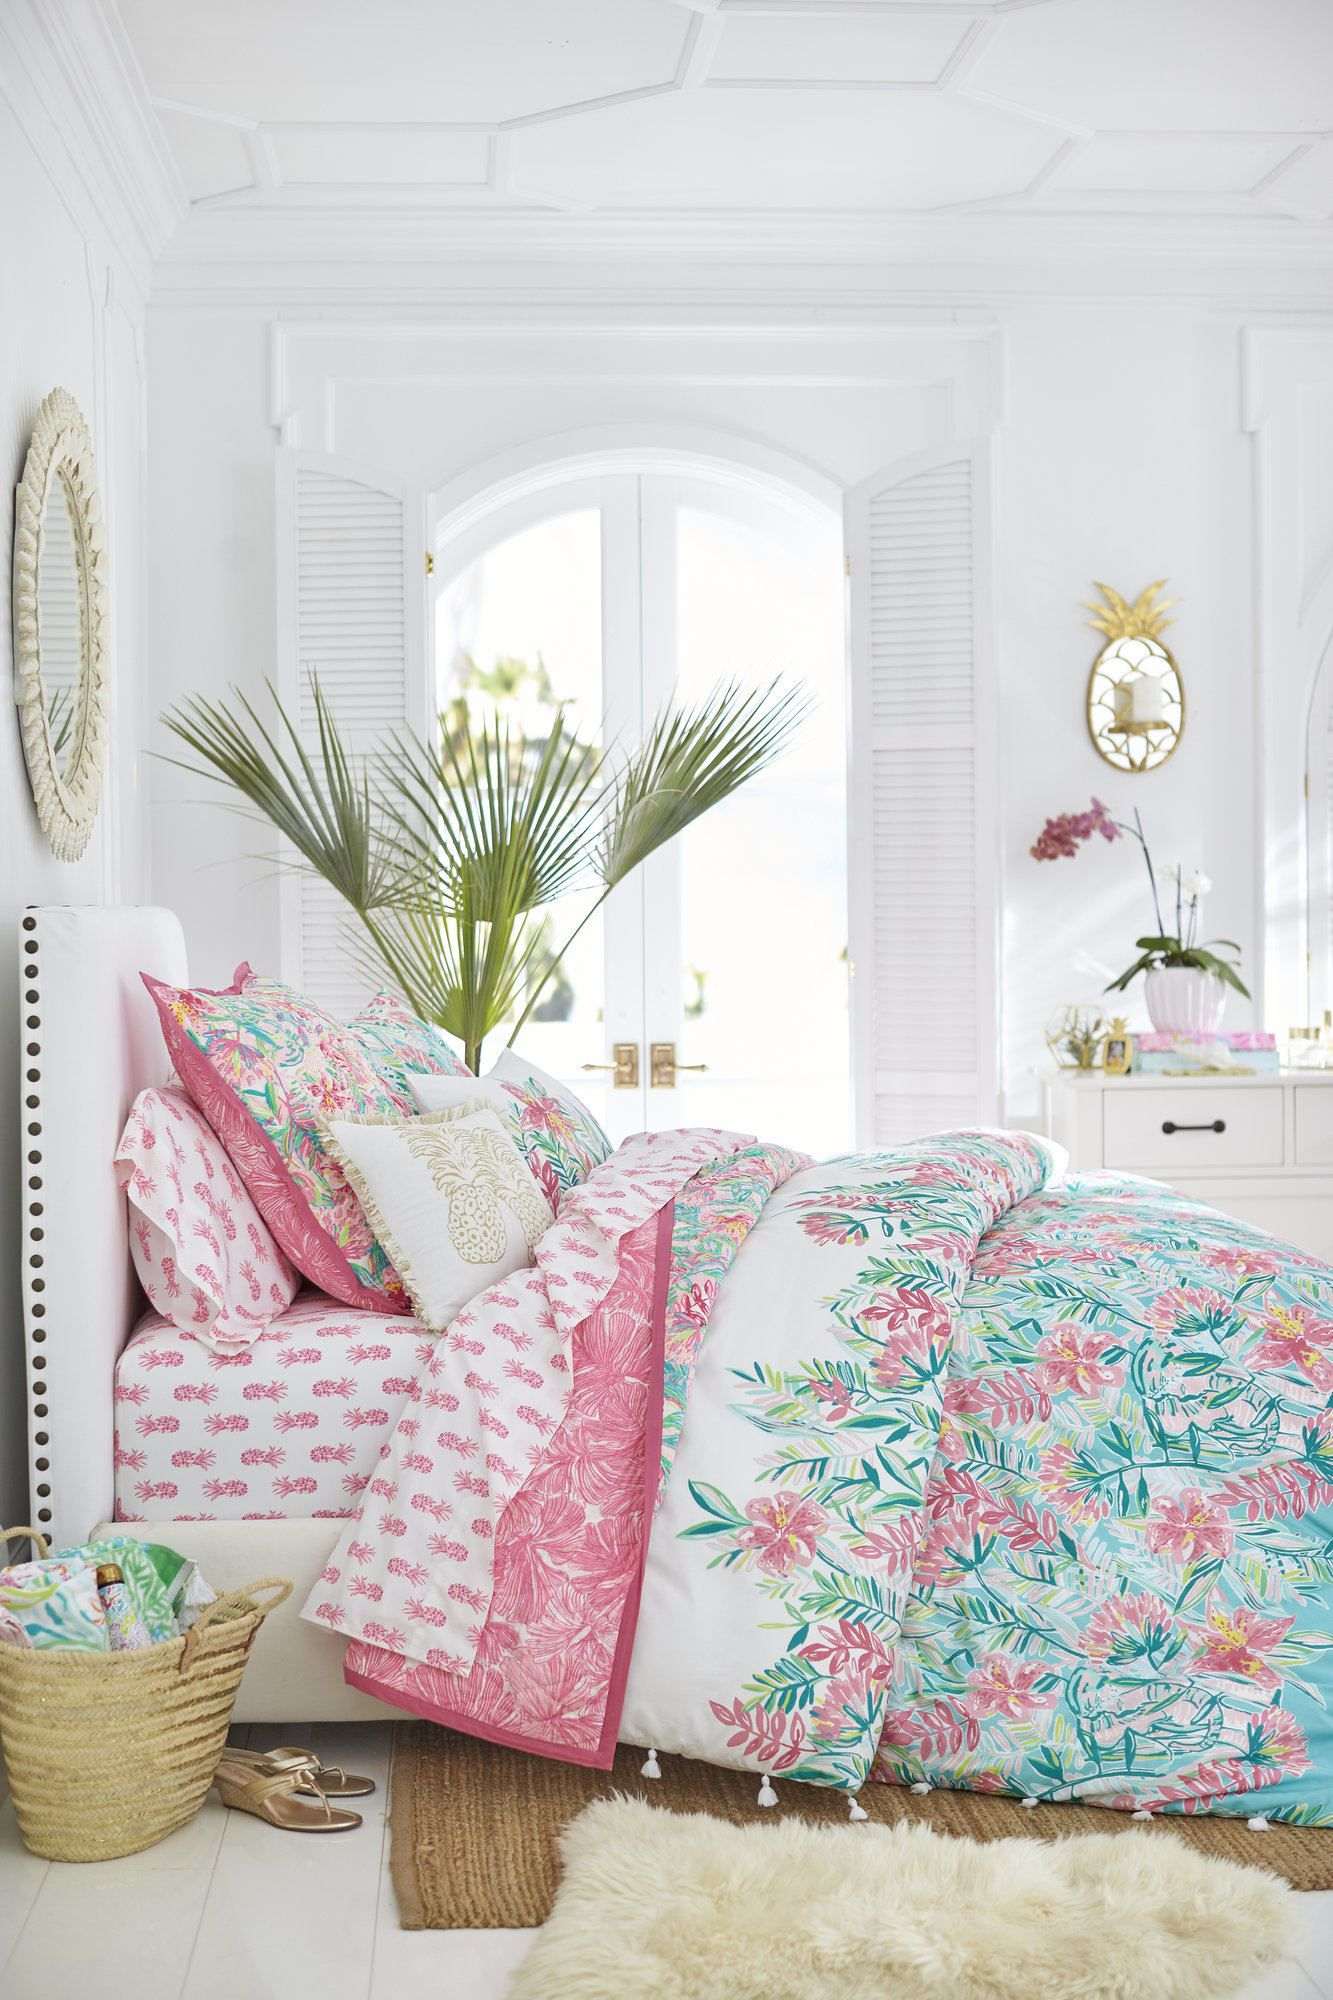 Pottery Barn And Lilly Pulitzer Home Decor Collection For